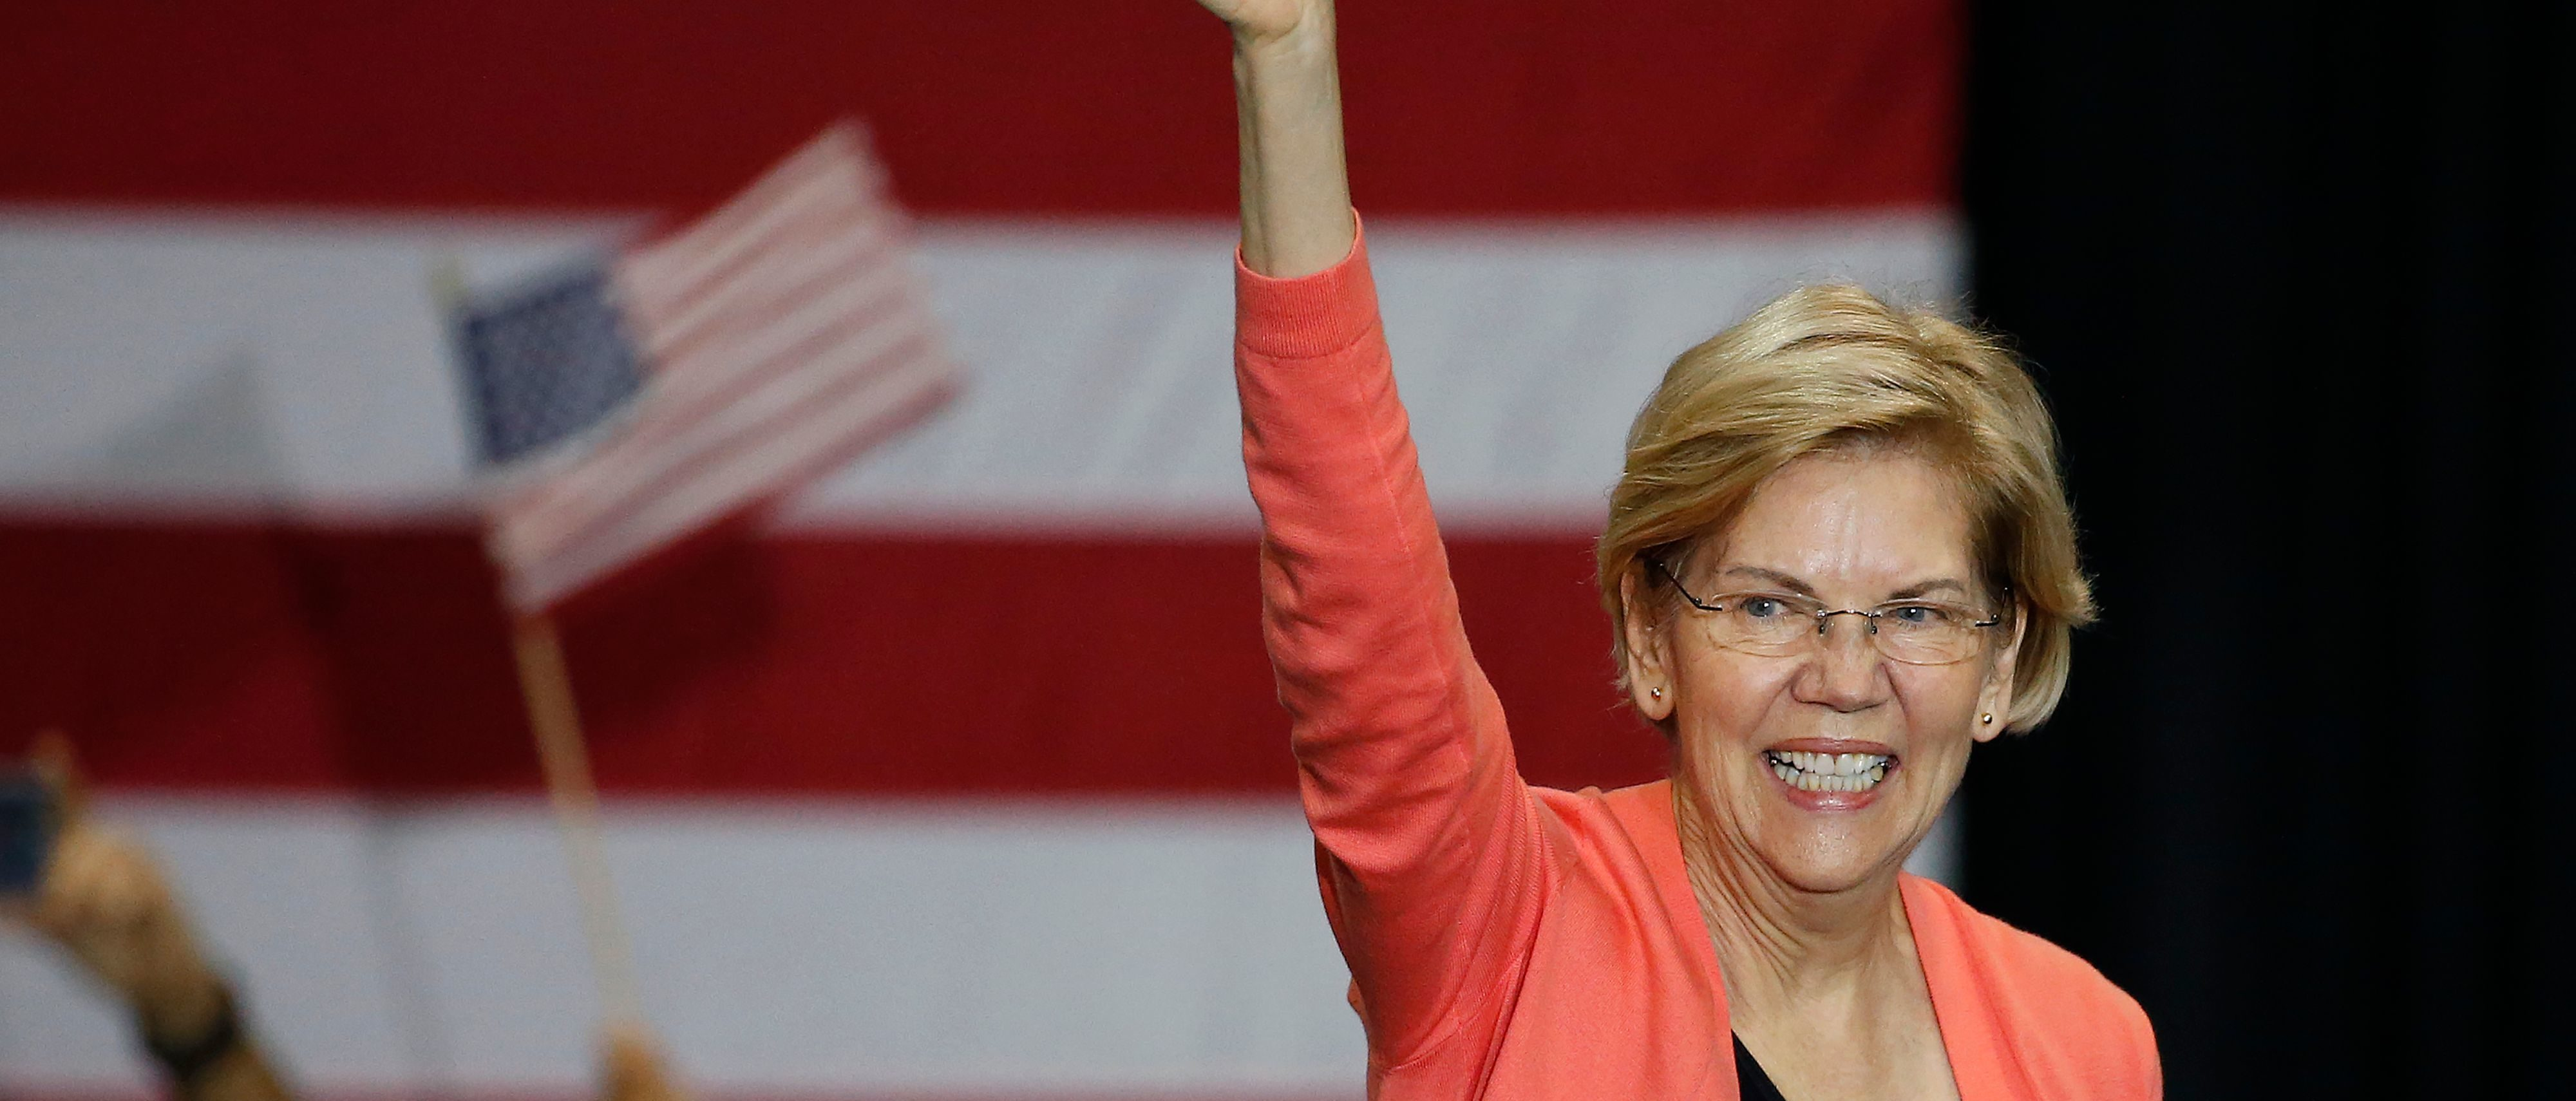 Senator of Massachusetts (D) and Democratic Presidential hopeful Elizabeth Warren gestures as she speaks during a town hall meeting at Florida International University in Miami, Florida on June 25, 2019. (Photo by RHONA WISE / AFP)